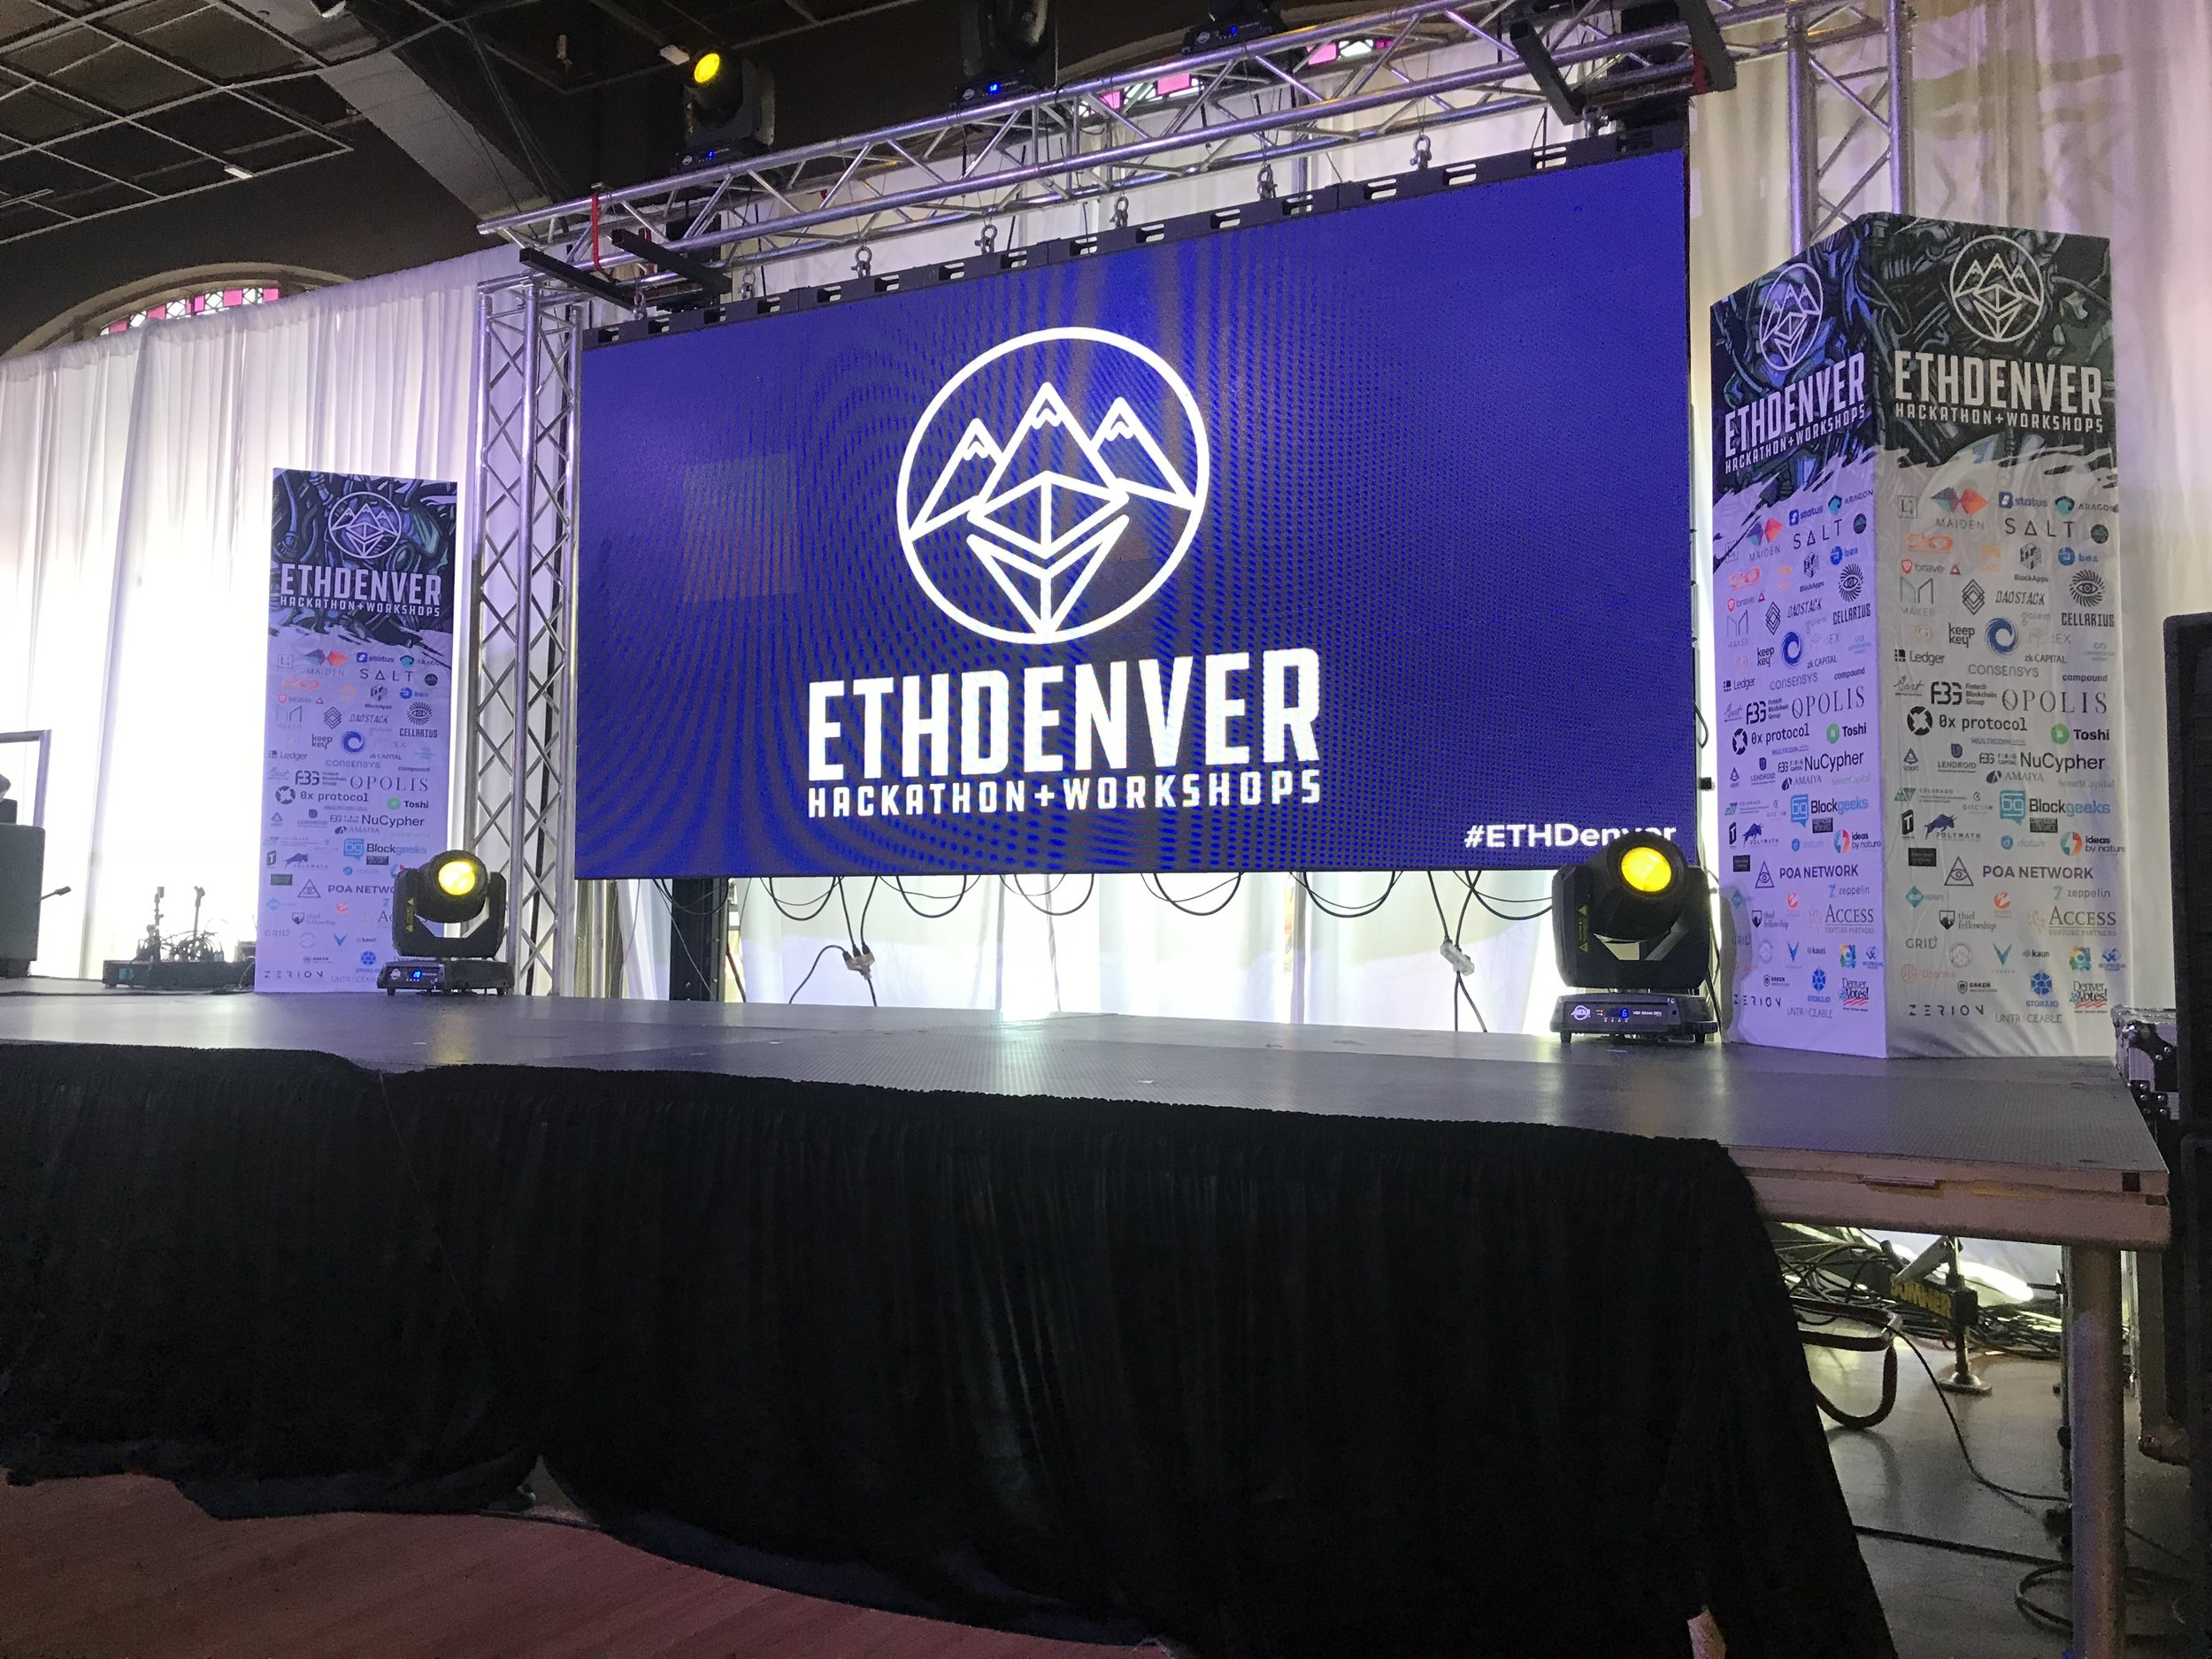 ETHDenver set the stage for one fanstastic hackathon and conference event.